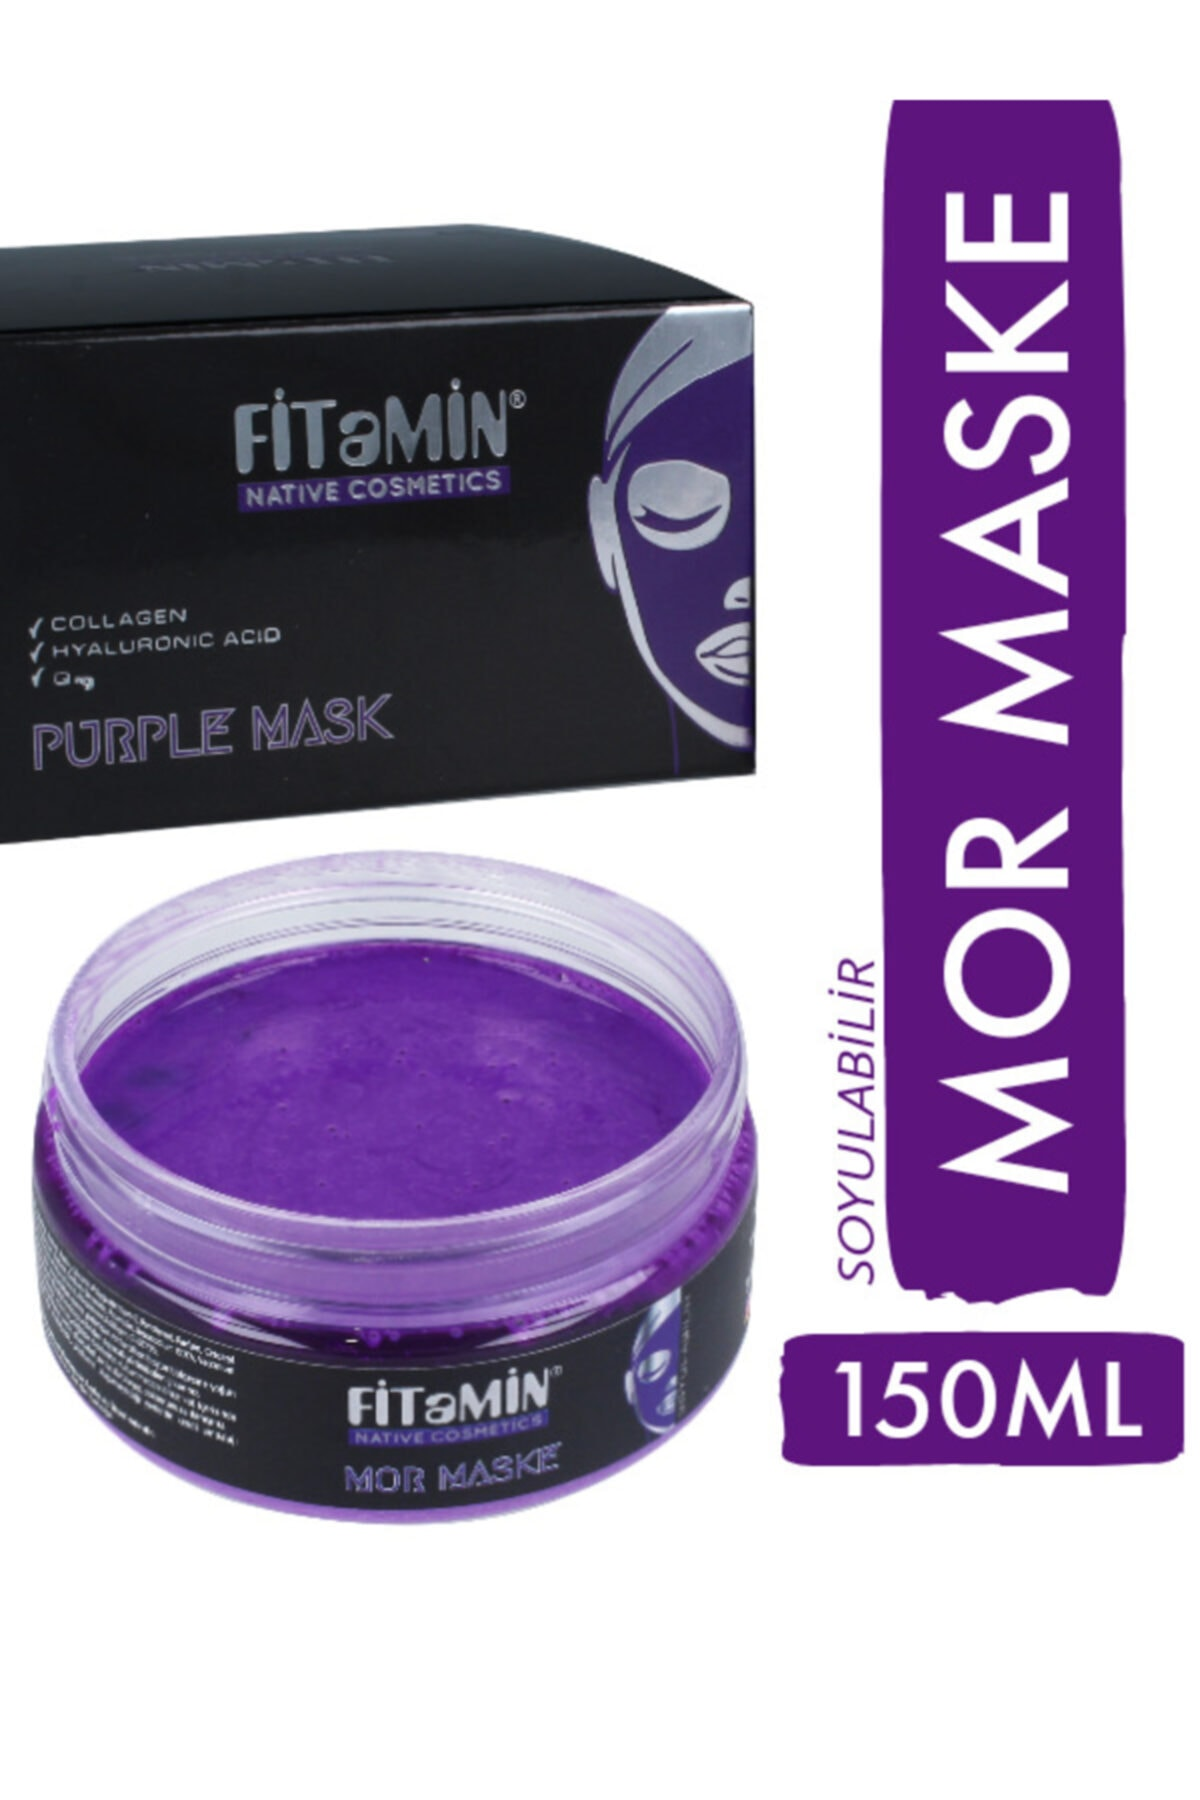 fitamin Soyulabilir Mor Maske Collagen Q10 Karamürver 150ml 2